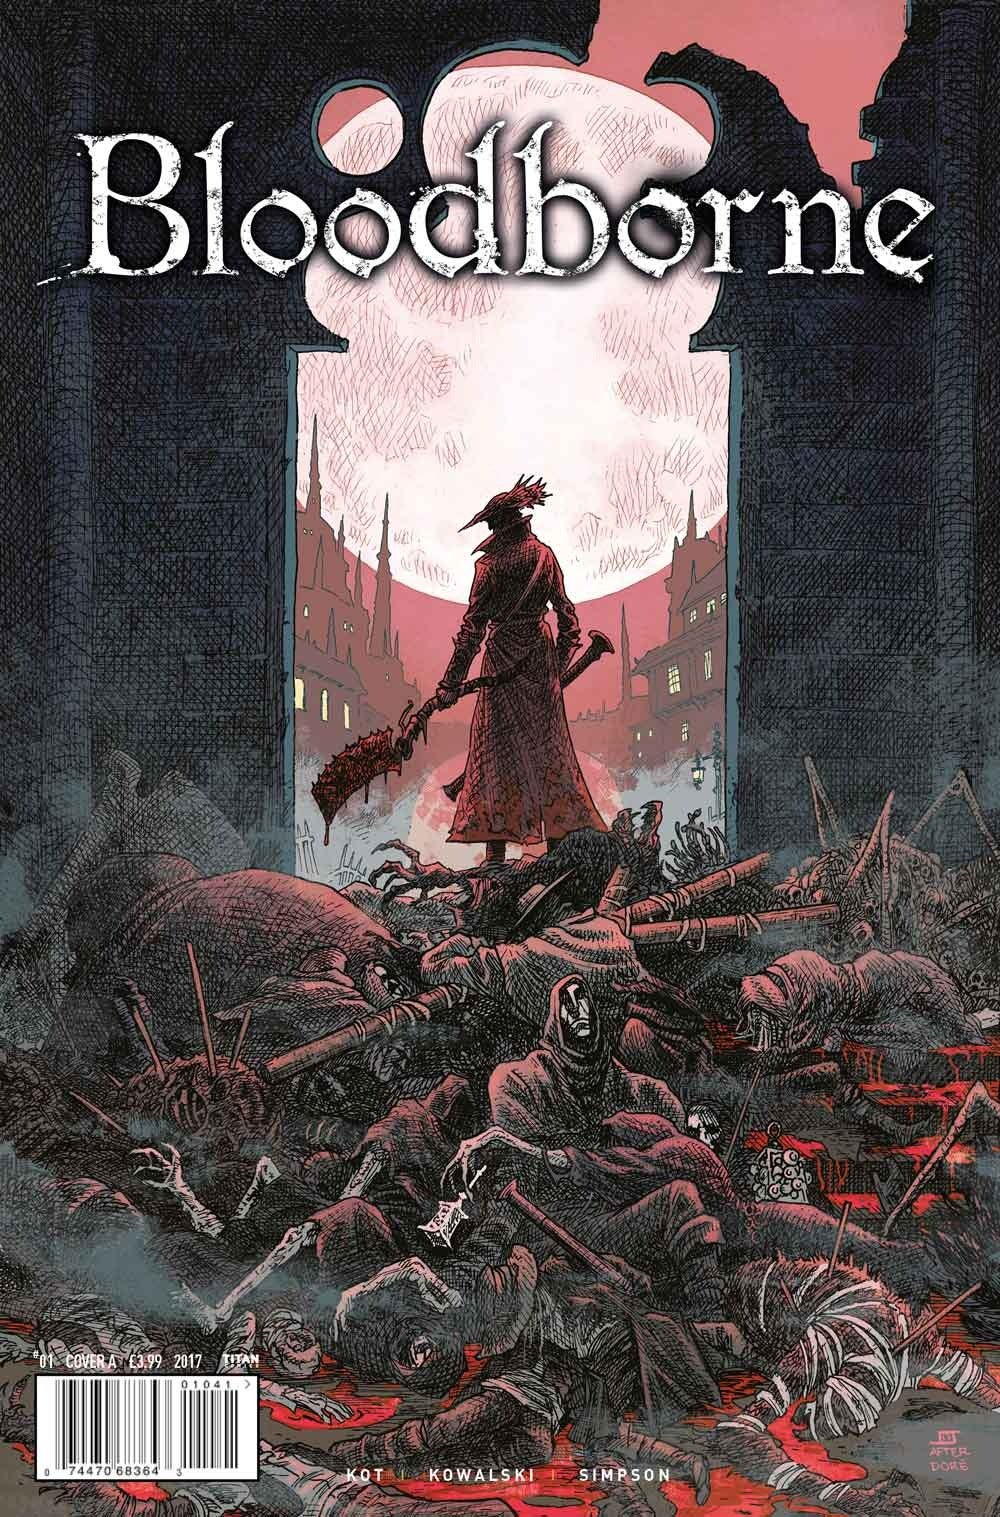 3321486-zbloodborne#1 cover a